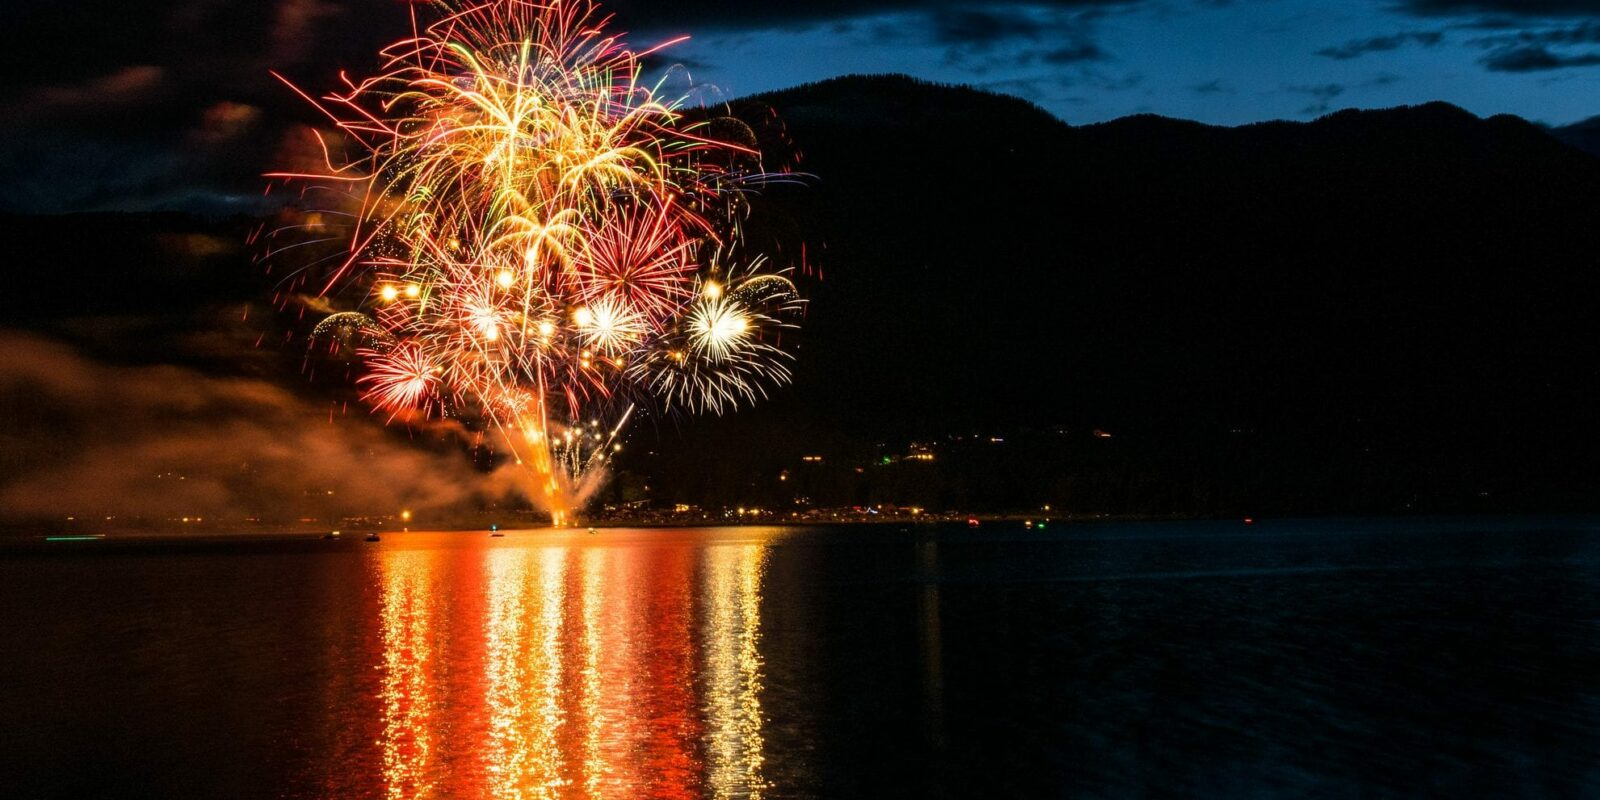 image of fireworks over a lake